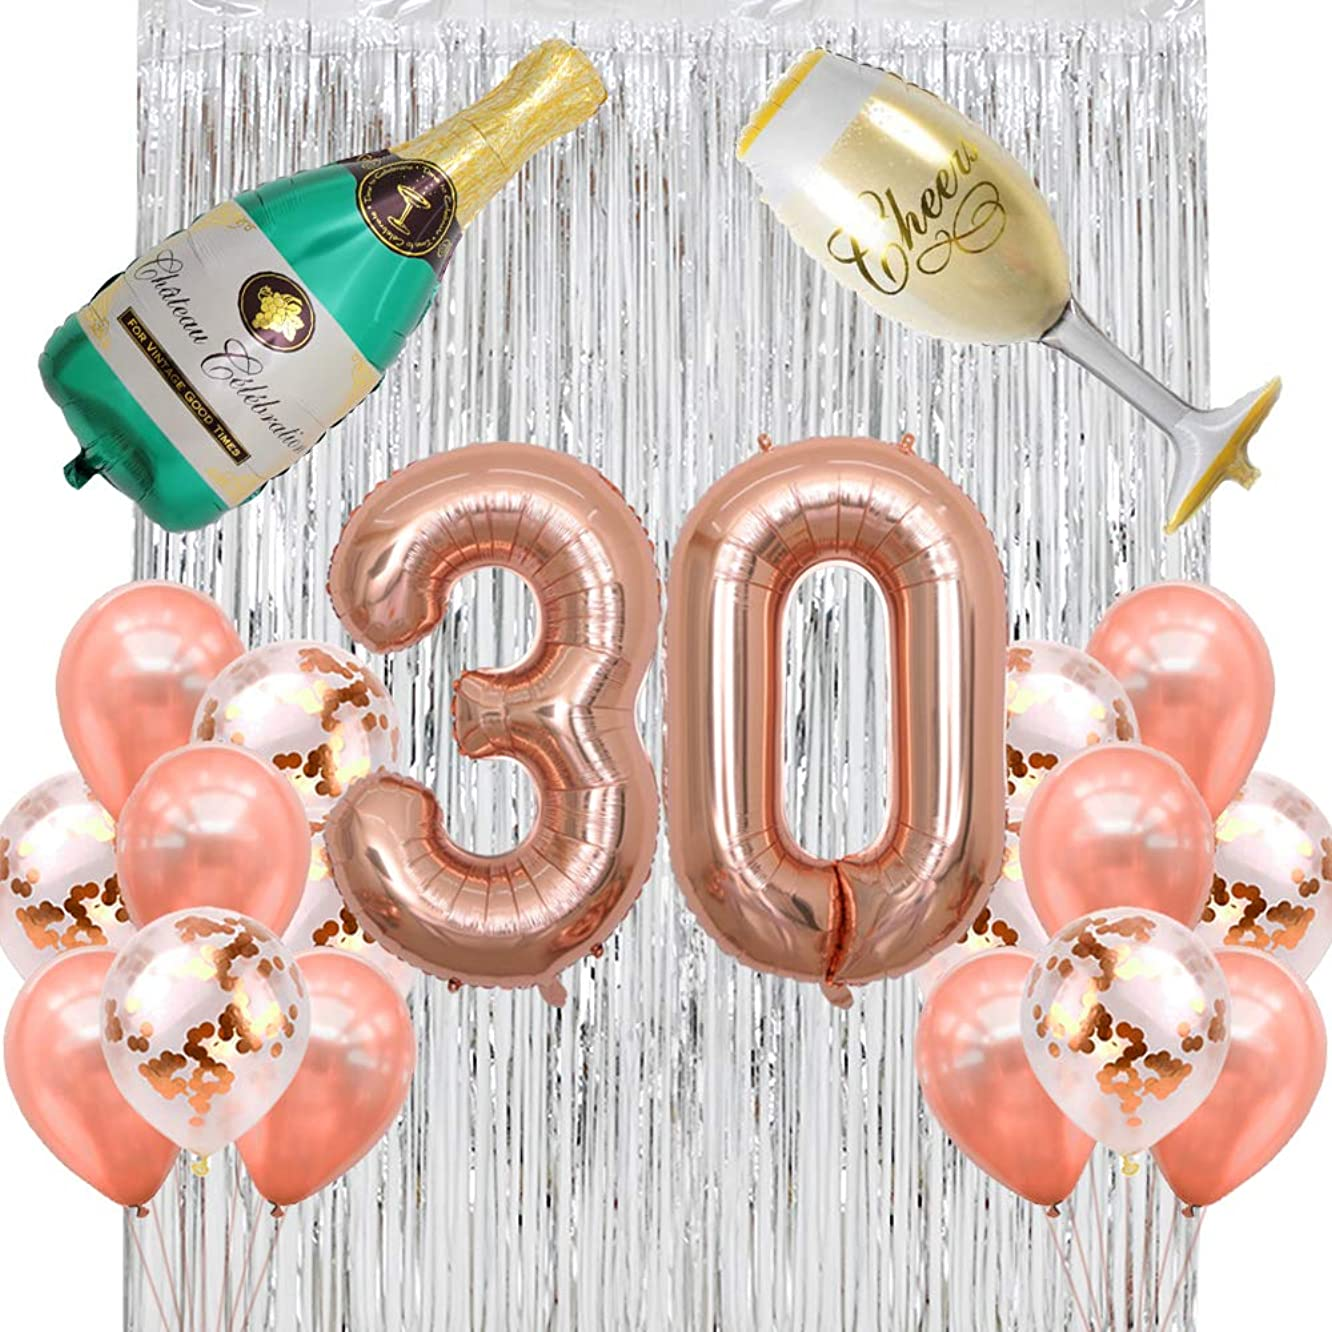 40 inch Jumbo Rose Gold 30 Number Balloons with Latex Balloons Champagne Bottle Flute Balloons Rose Gold Confetti Balloons Backdrop Silver Fringe Curtains 30th Birthday Party Anniversary Decorations